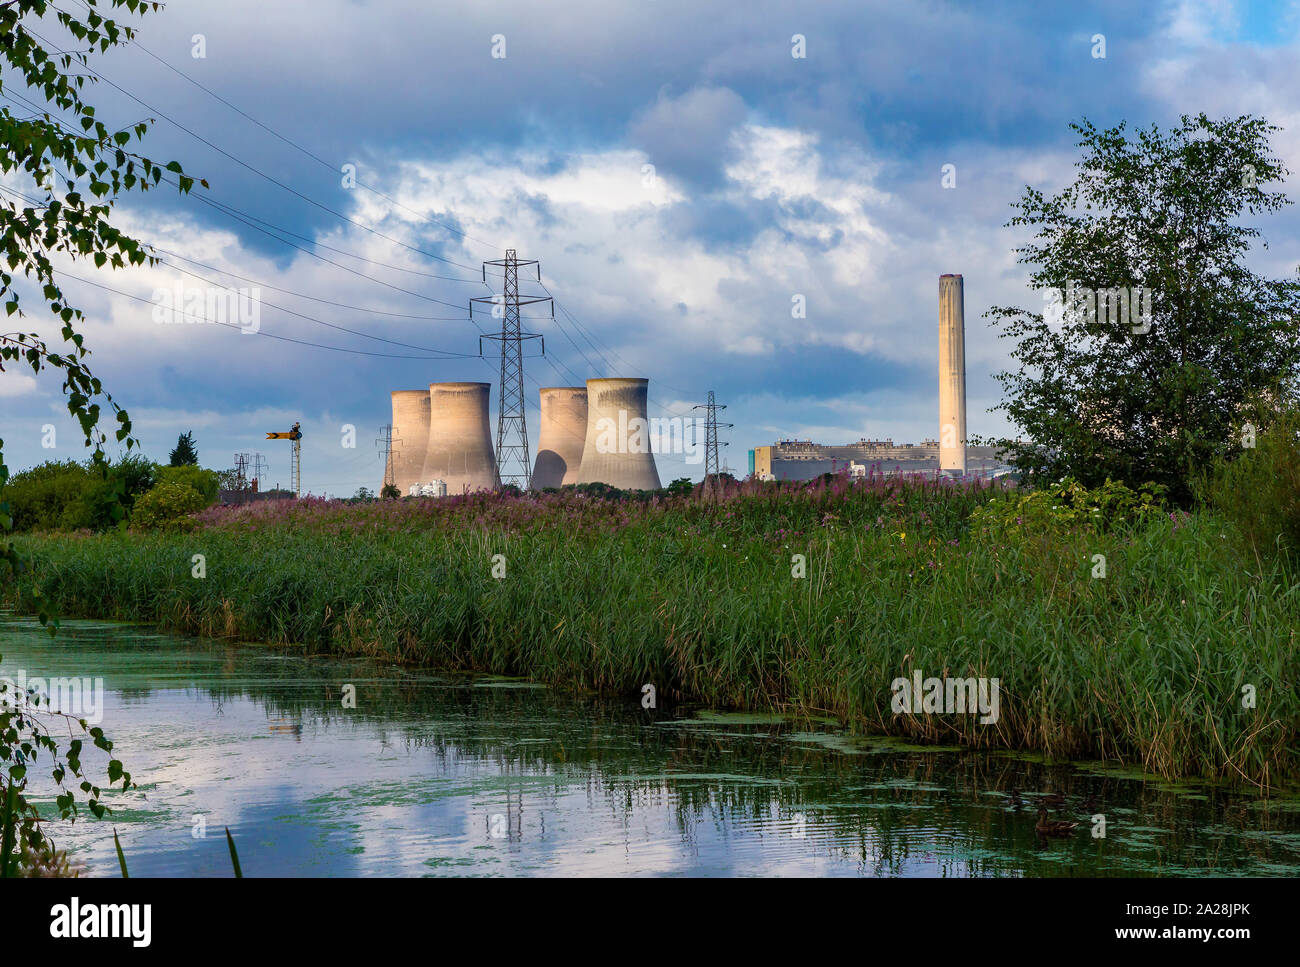 Fiddlers Ferry Power Station seen from the Trans Pennine Trail, St Helen's Canal, Gatewarth, Warrington Stock Photo